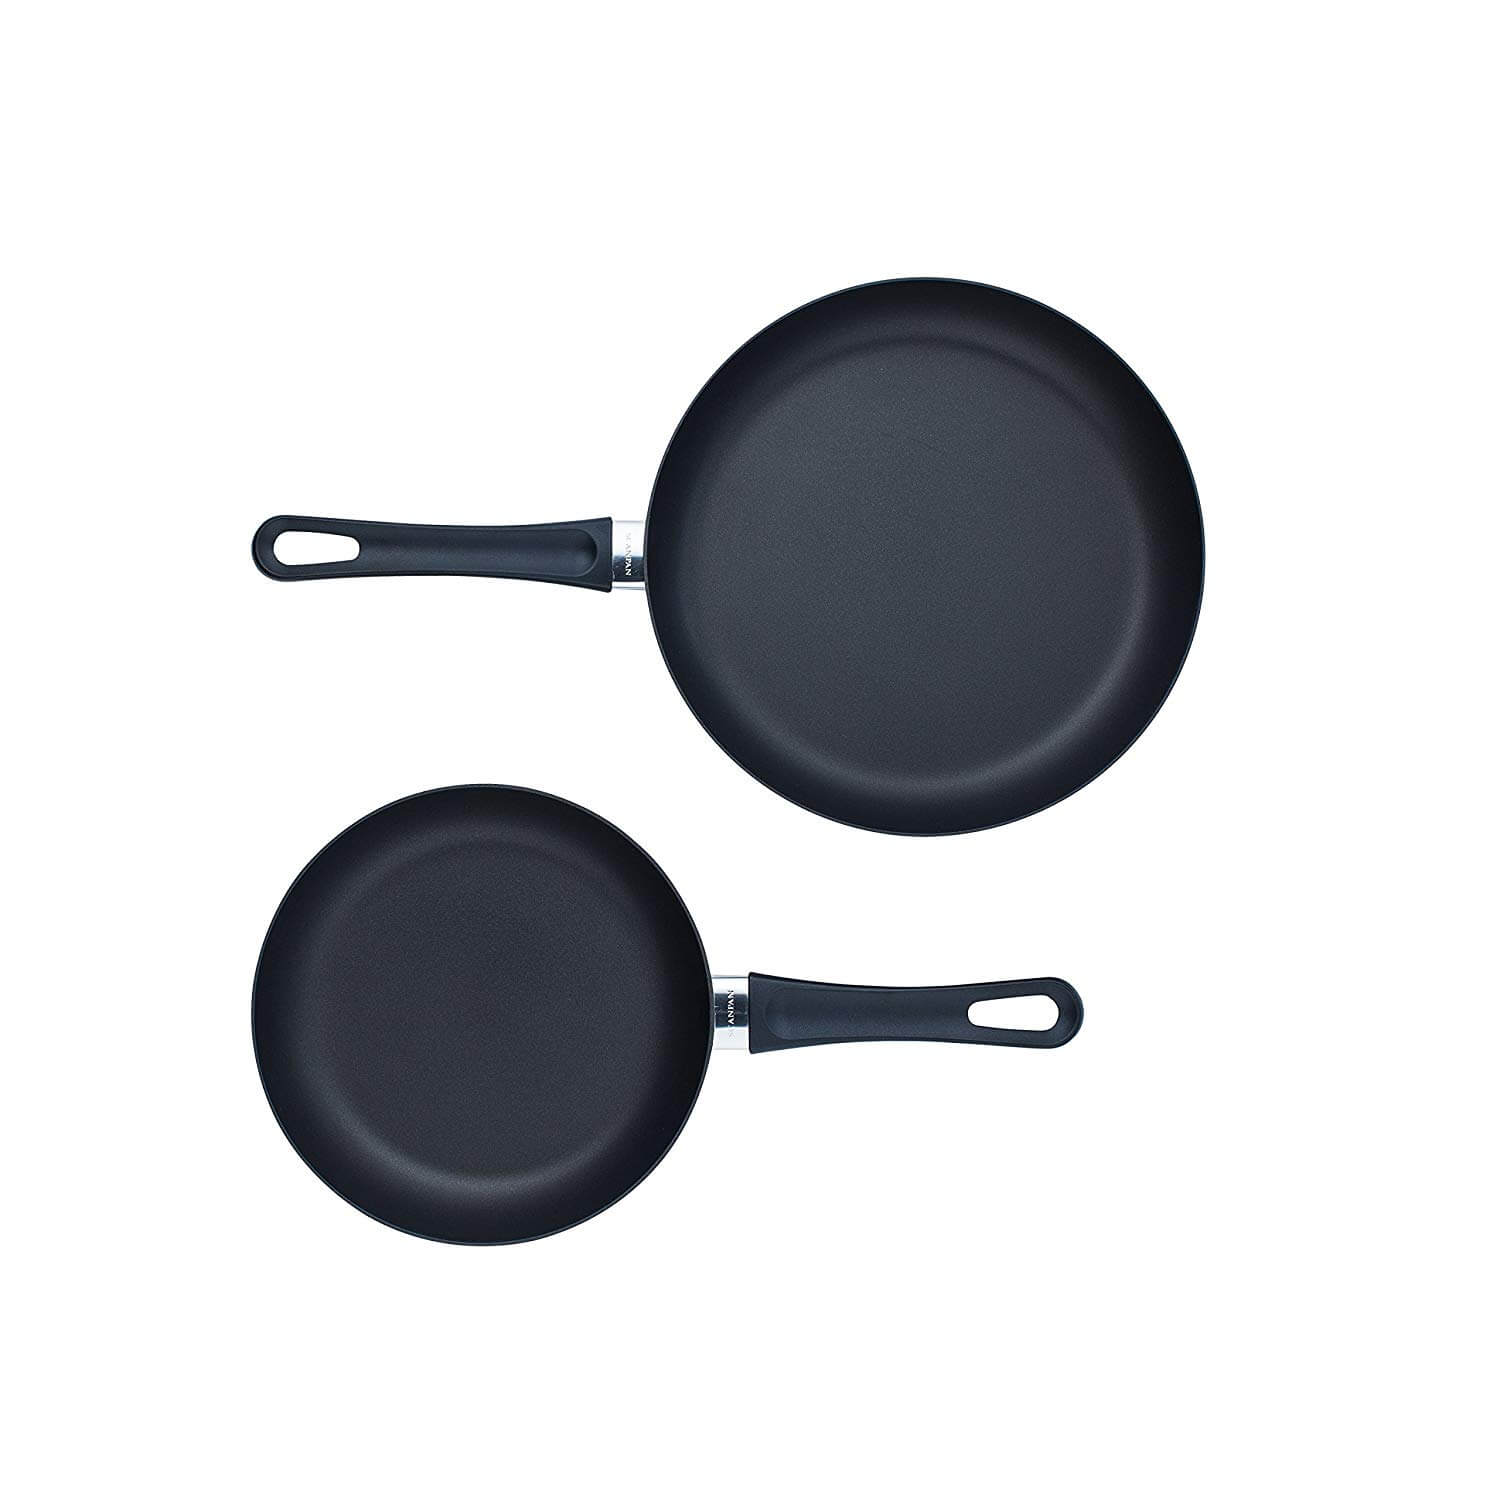 Scanpan Classic Fry Pan Set